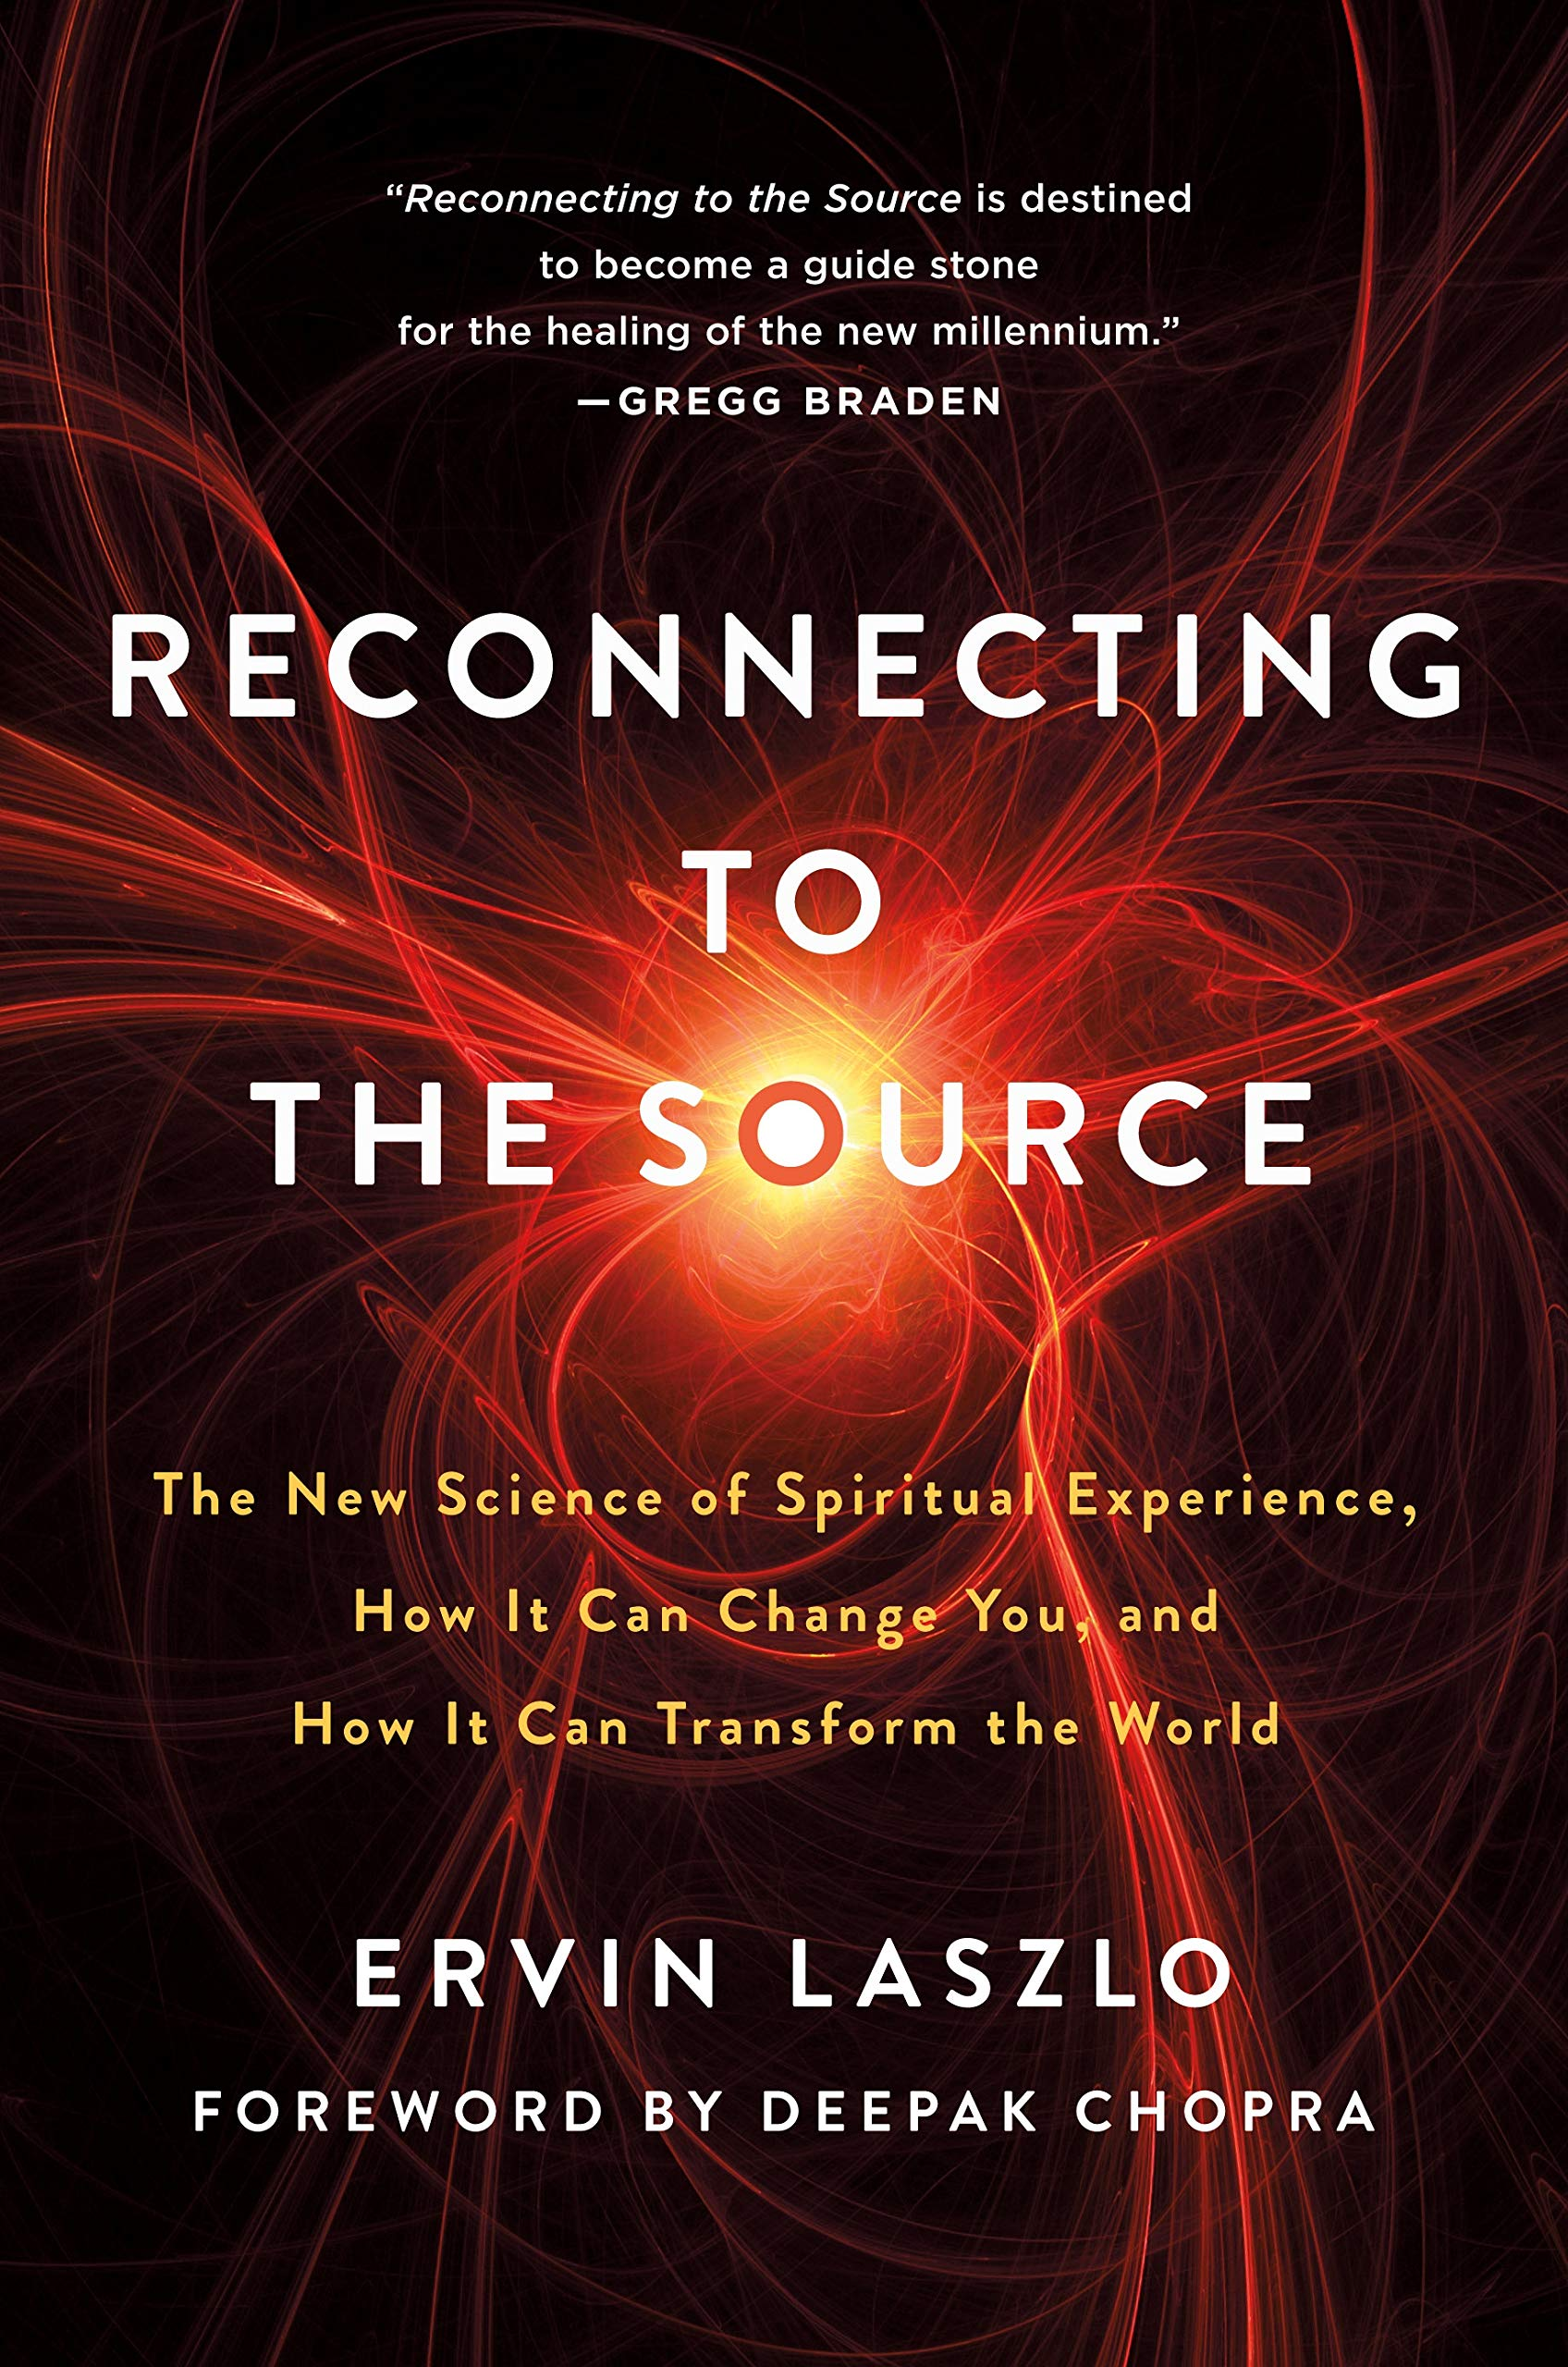 Download Reconnecting To The Source: The New Science Of Spiritual Experience, How It Can Change You, And How It Can Transform The W... 